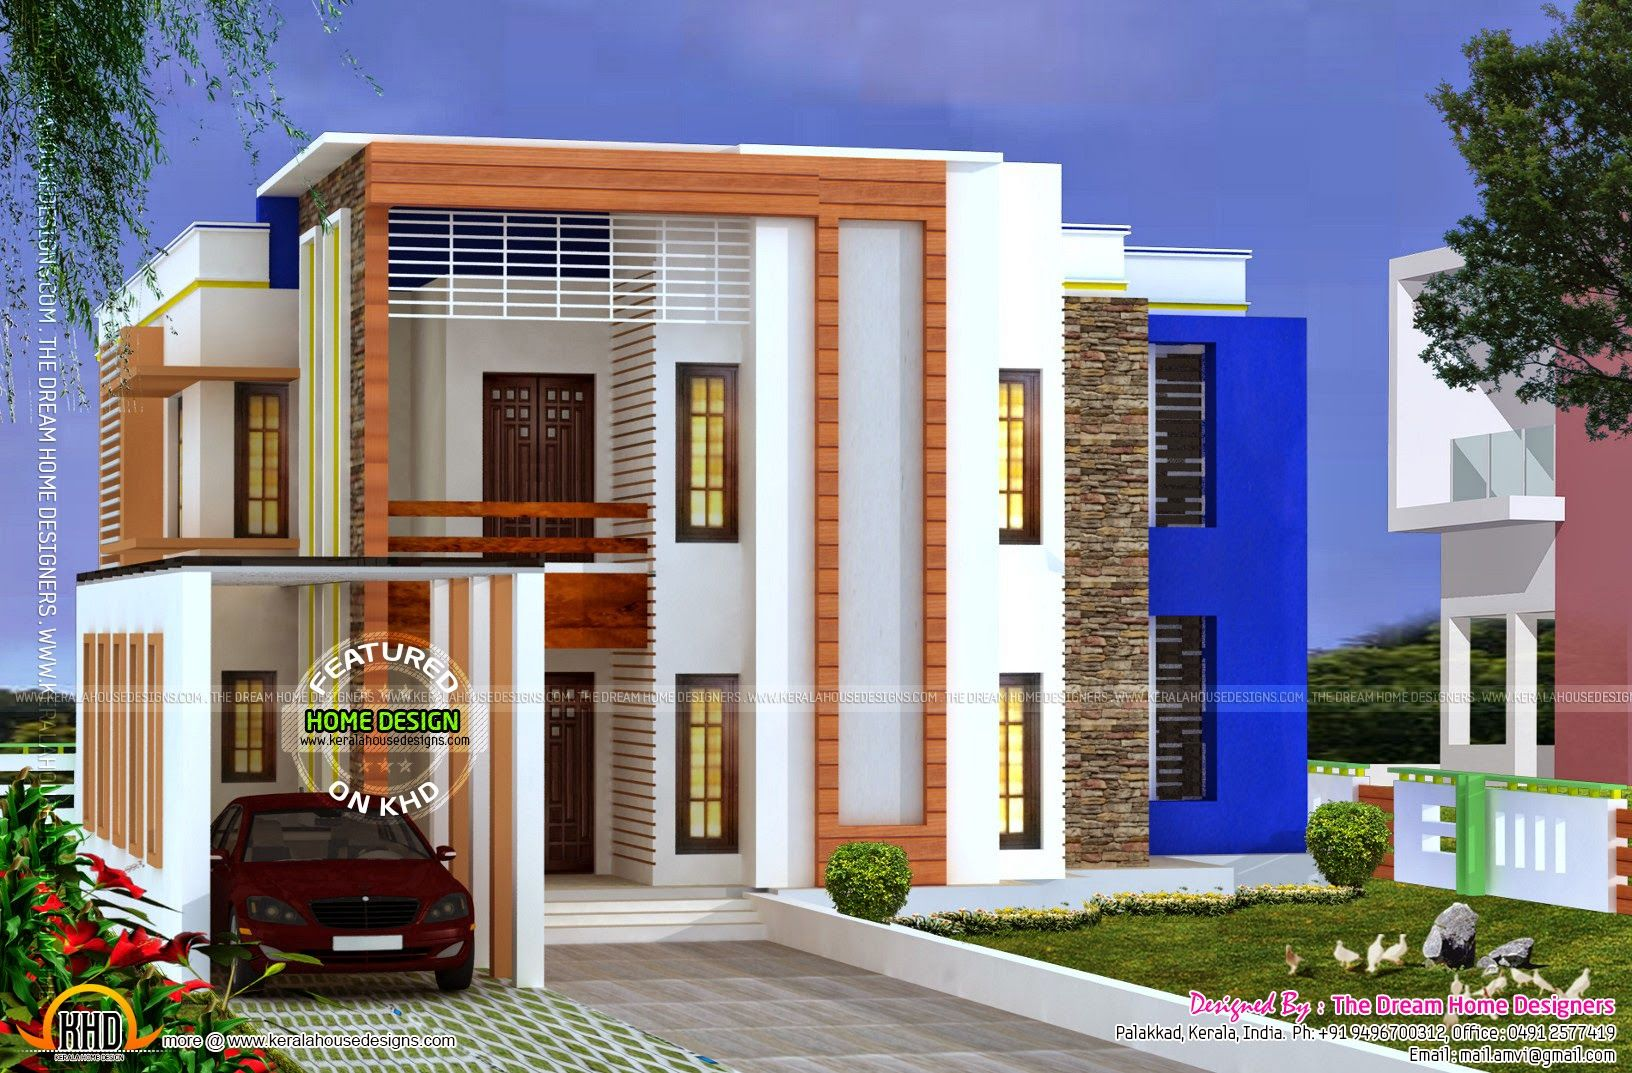 ashwin architects specializes in urban house planning house ashwin architects specializes in urban house planning house designs and contemporary interiors for independent bungalows small plot houses duple